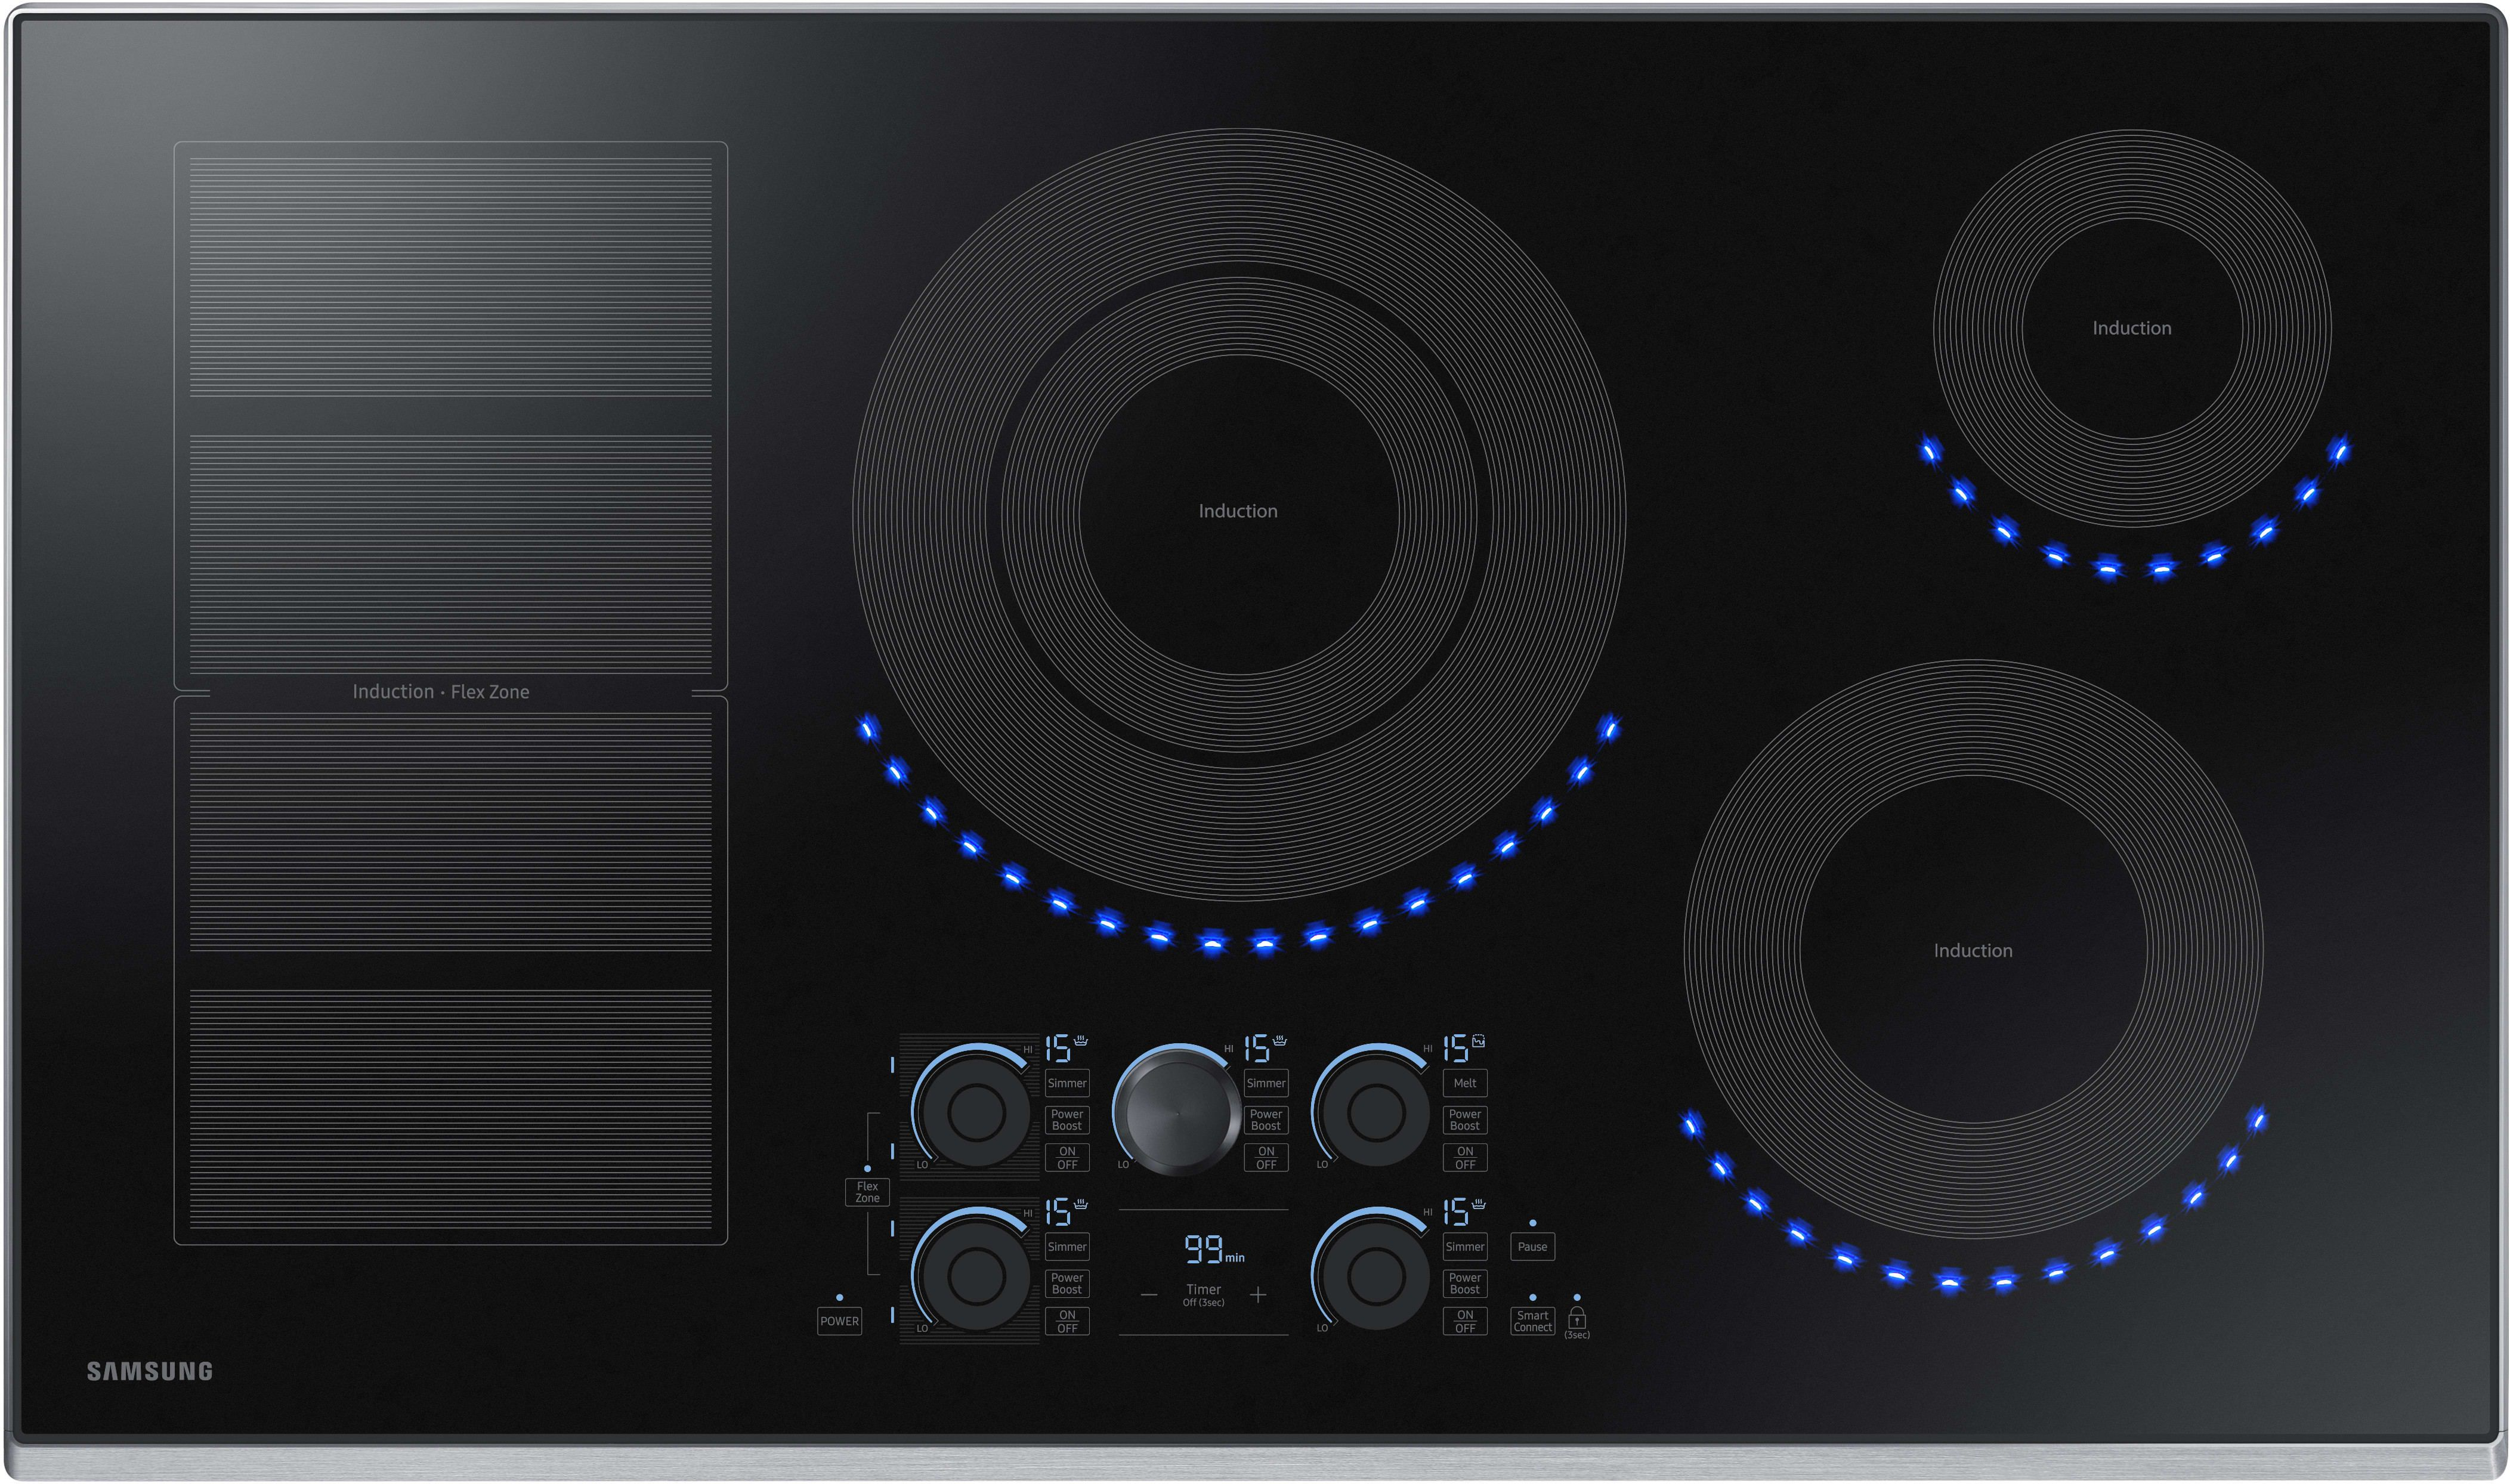 Samsung Nz36k7880us 36 Inch Induction Cooktop With Wi Fi Connectivity Flex Zone 15 Heat Settings Power Boost Melt Mode Simmer Control Virtual Flame Surfac